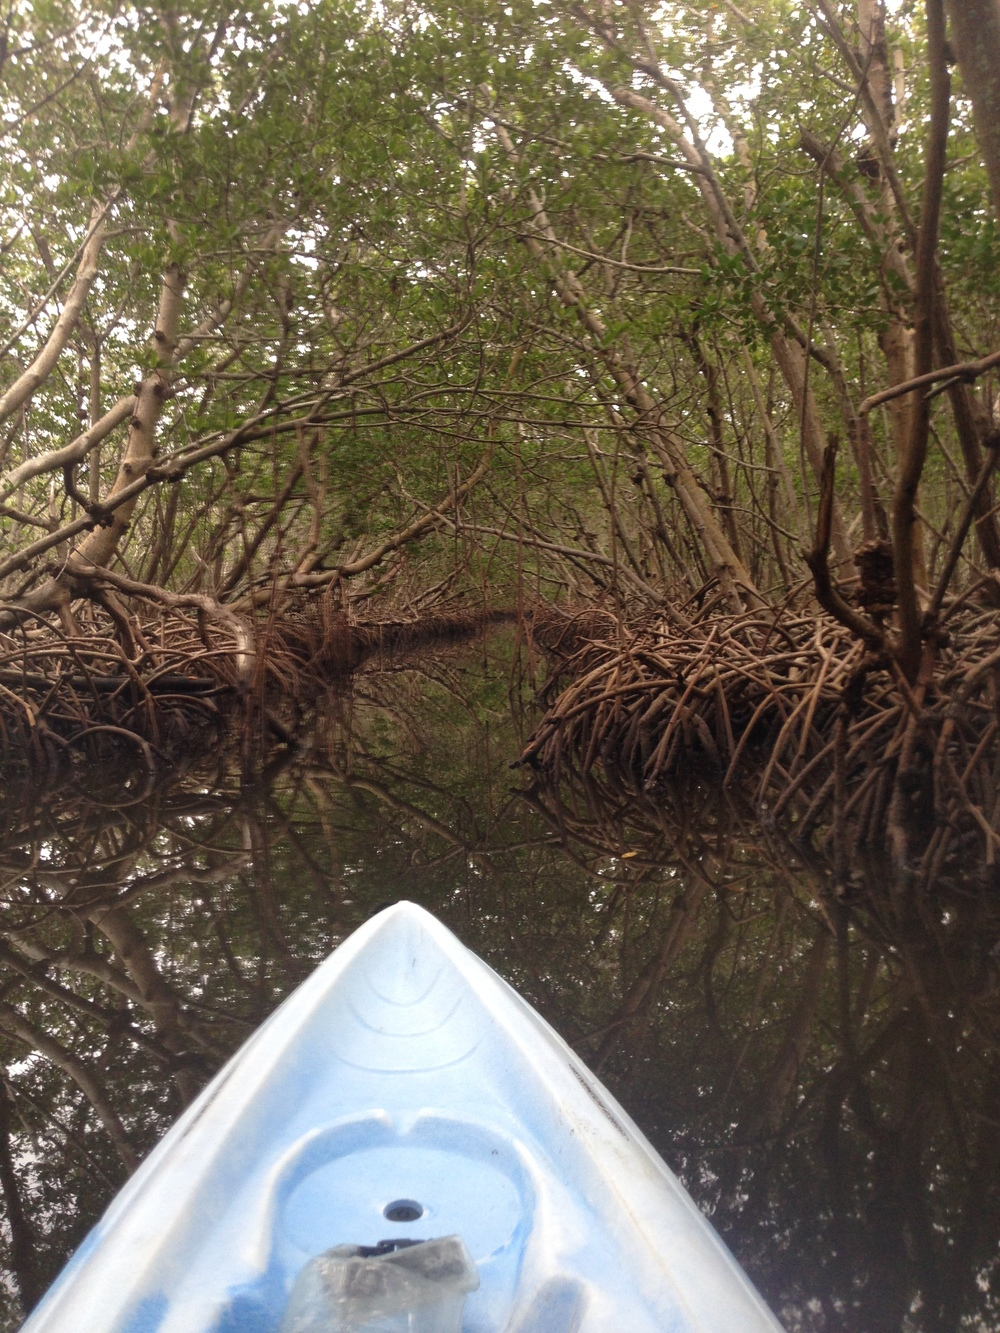 Paddling through the mangrove had me thinking about how this was probably how the native people of Florida might have traveled around Florida thousands of years ago!